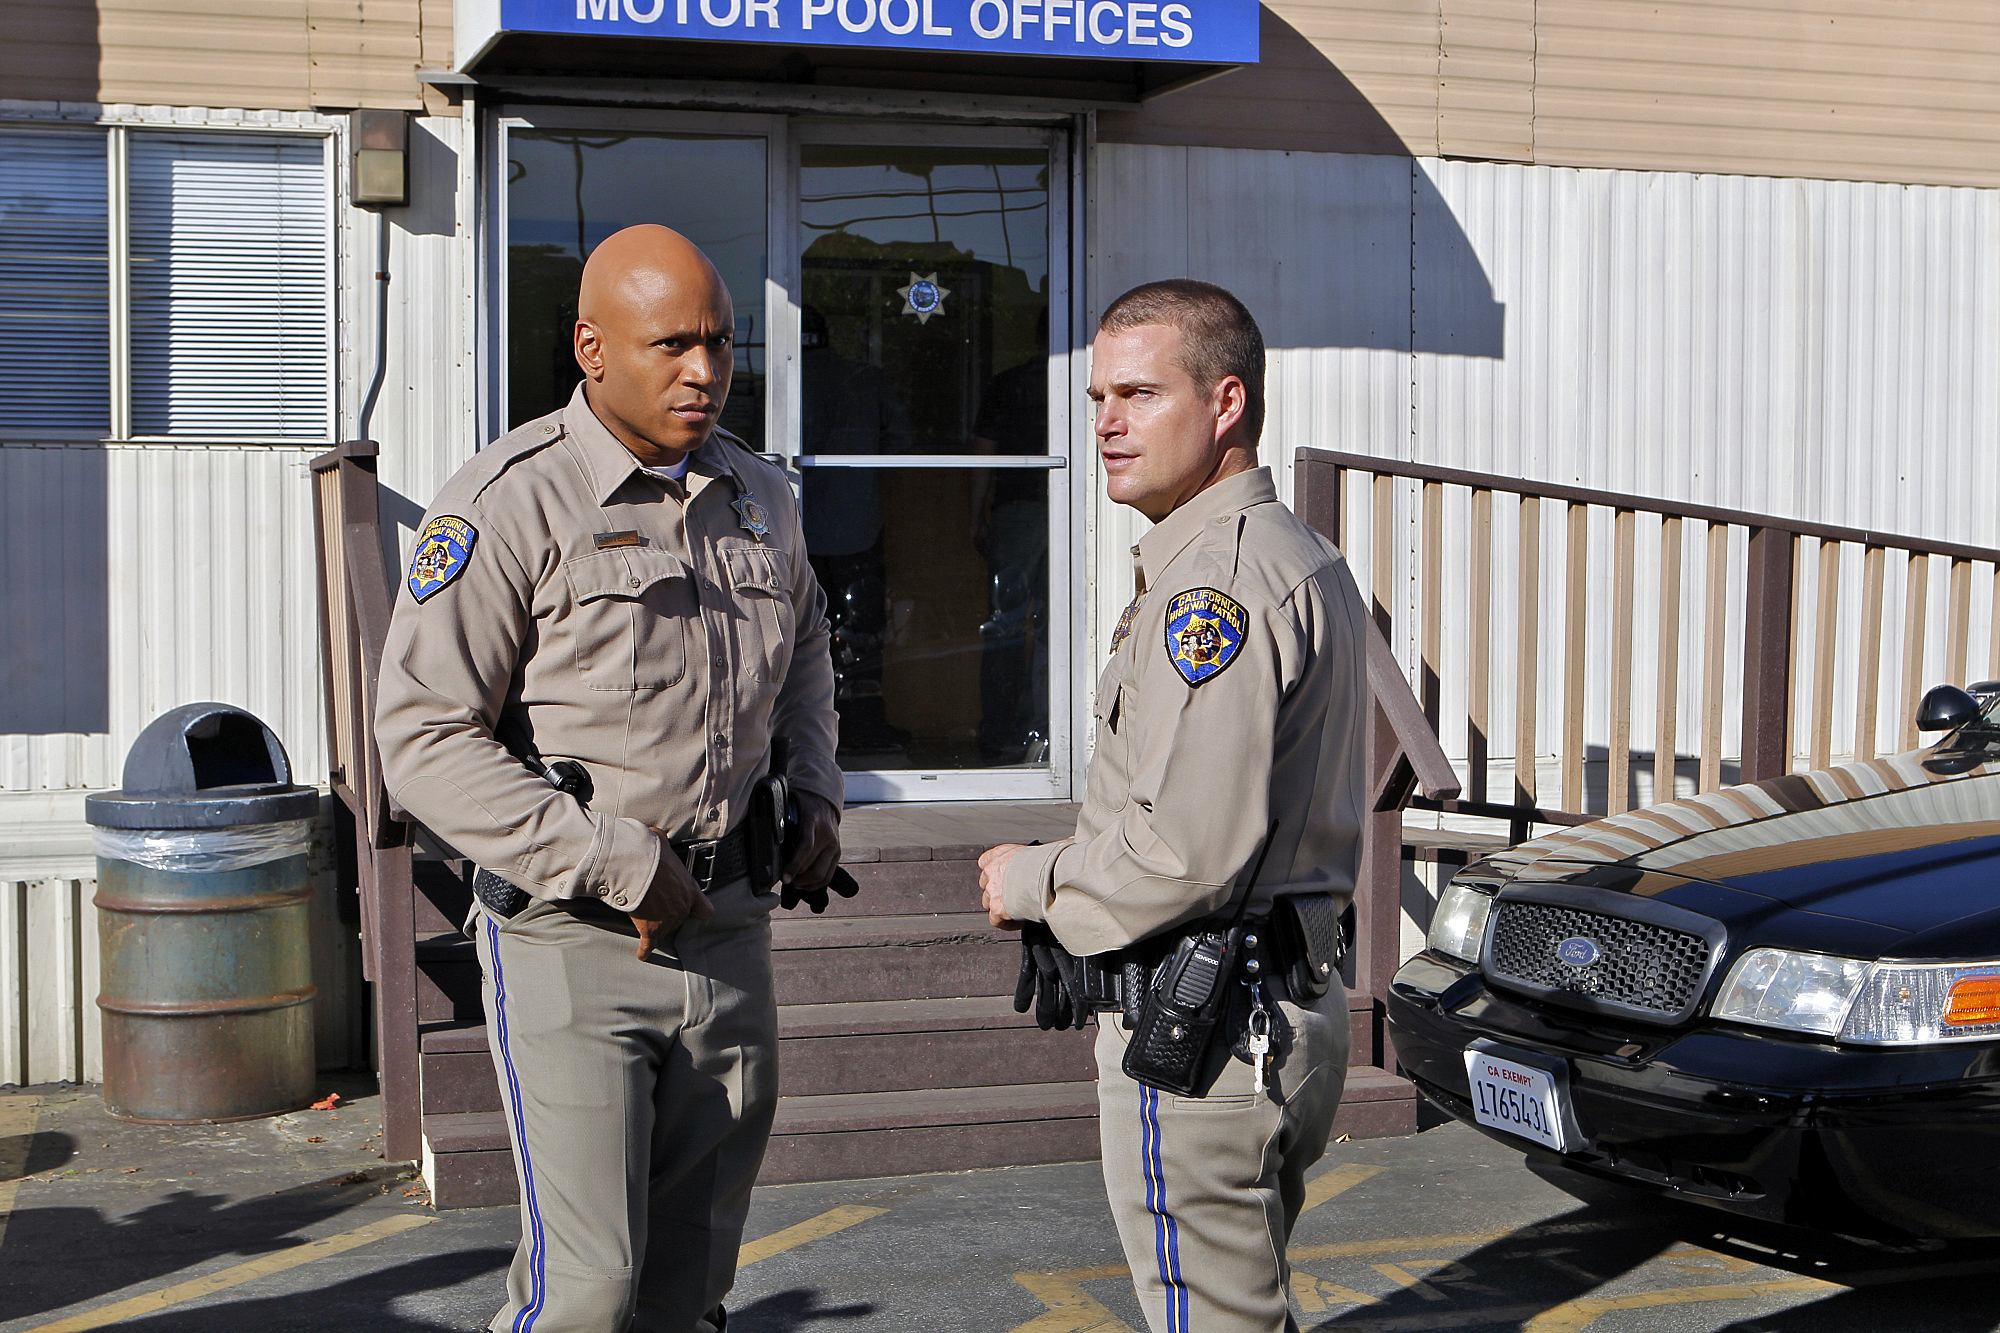 Sam and Callen, Motorcycle Cops with the CHP